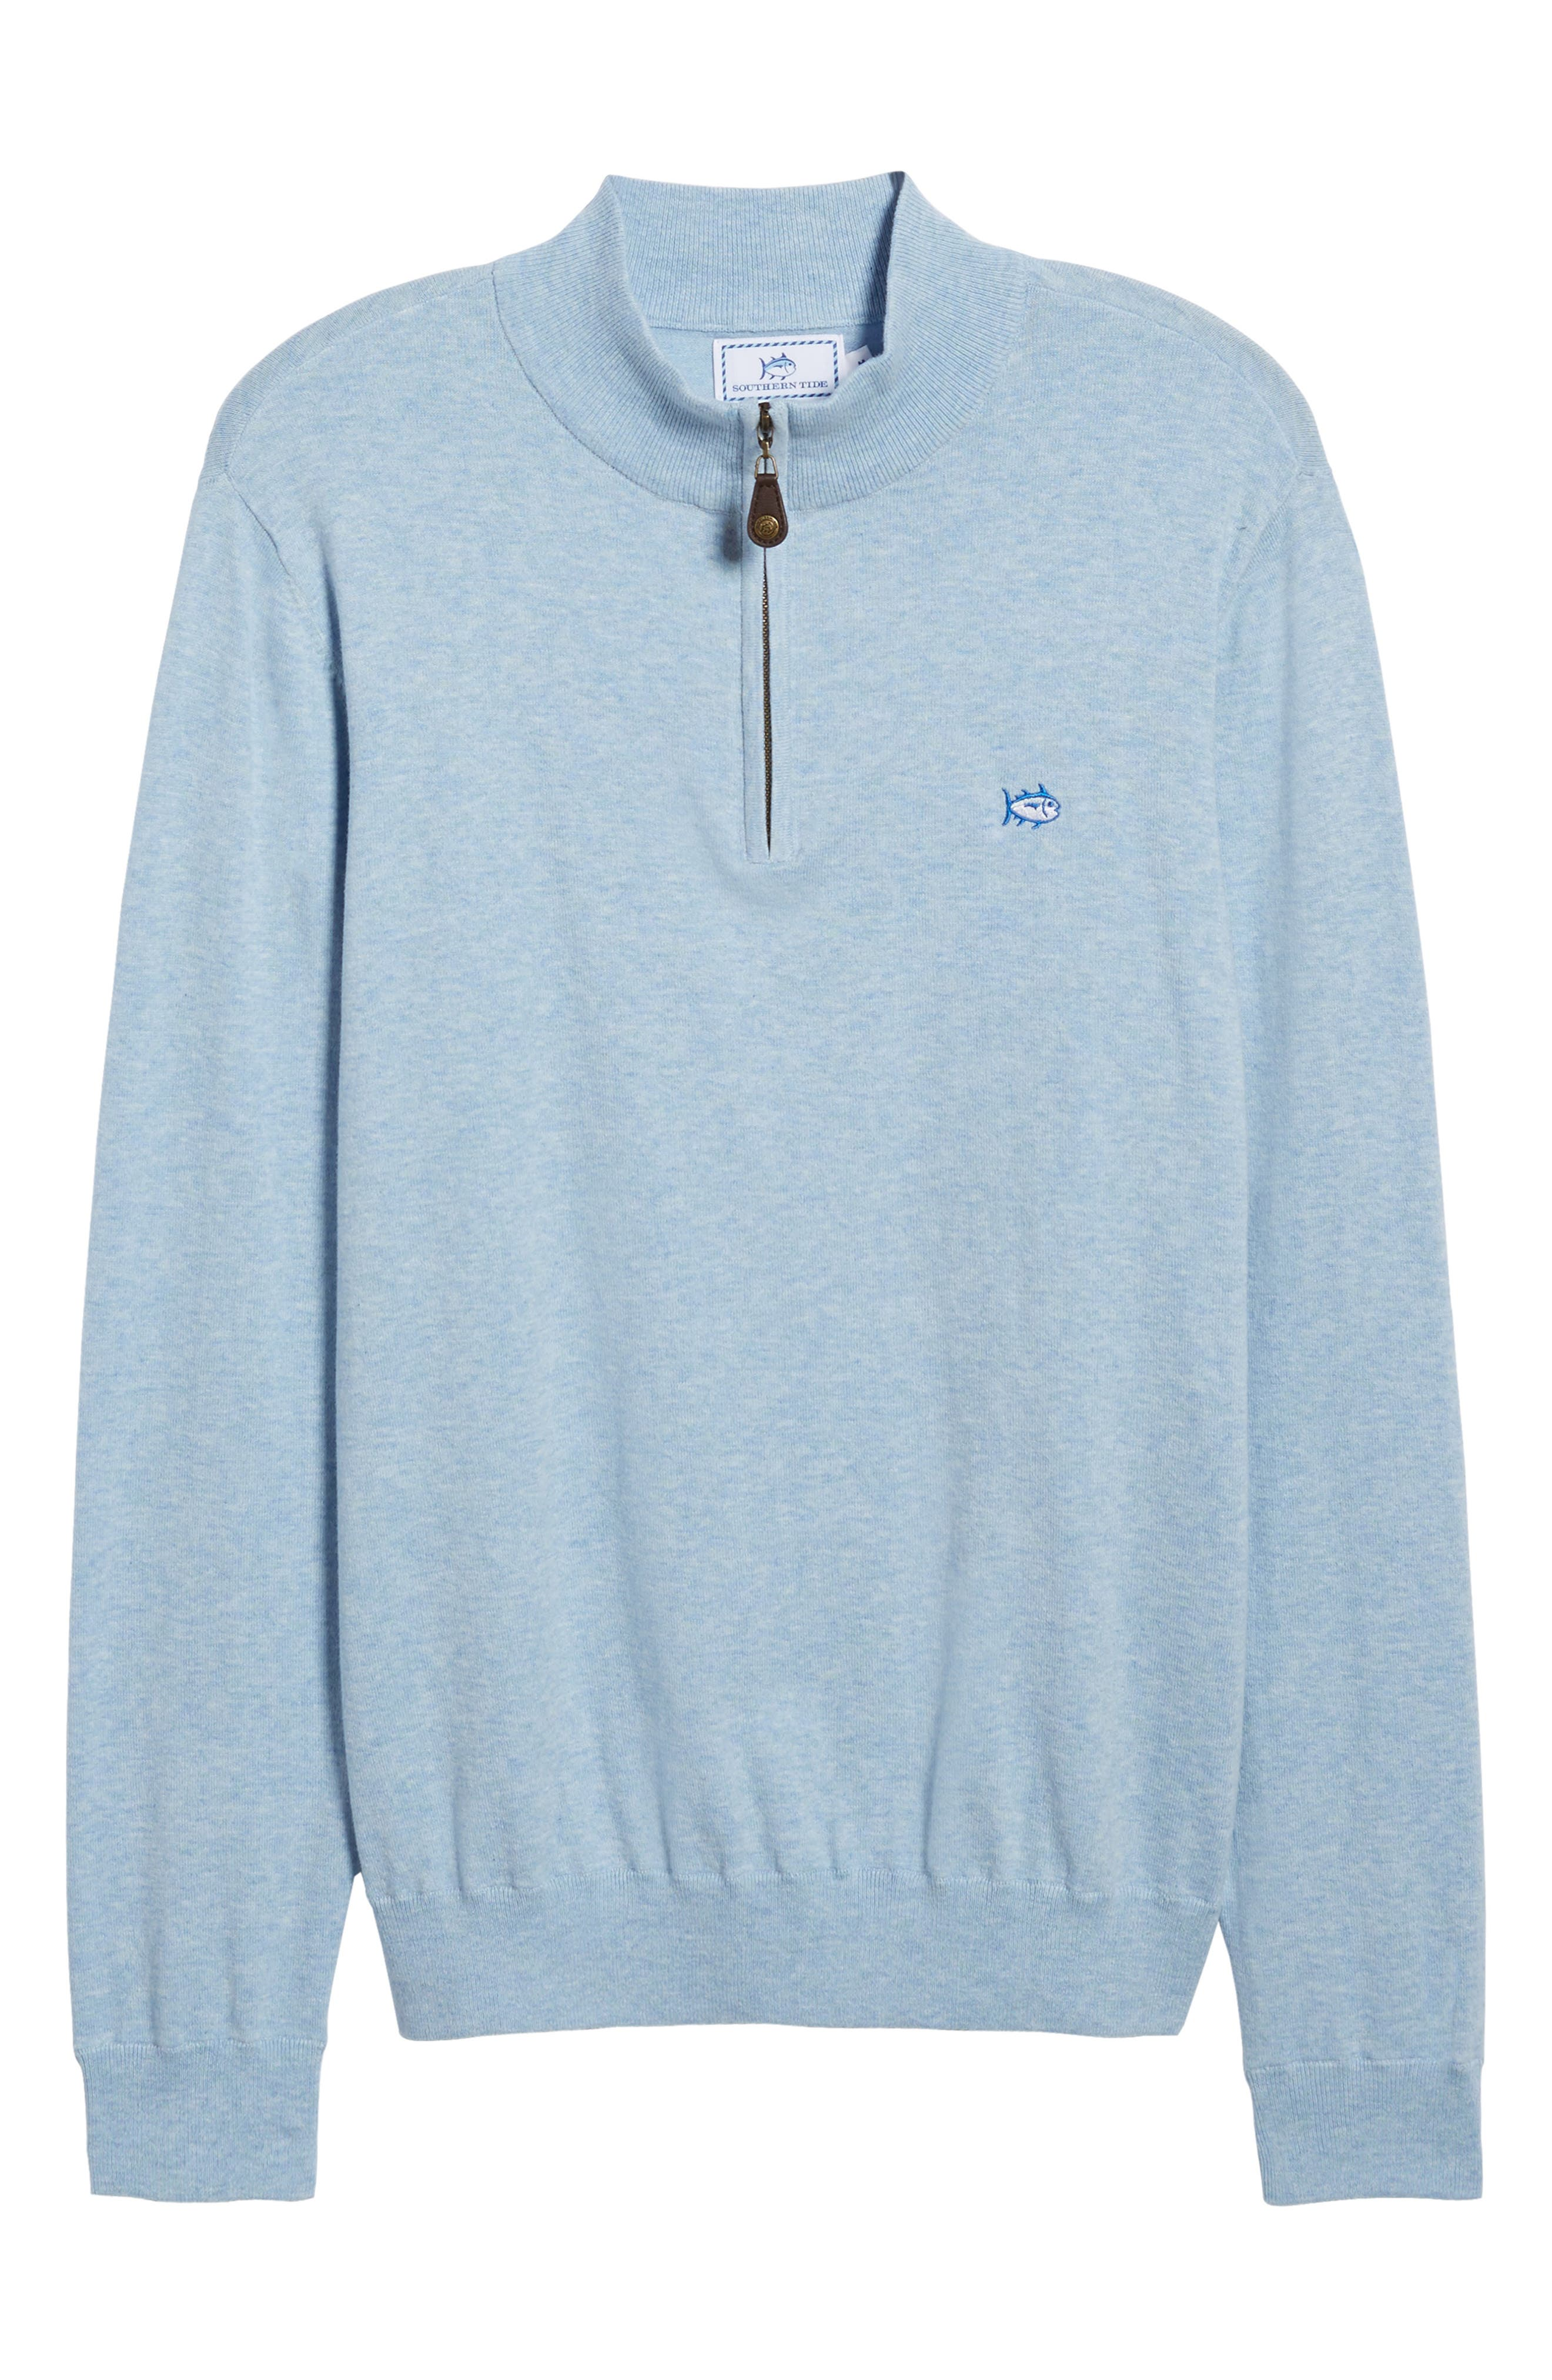 Marina Cay Quarter Zip Pullover,                             Alternate thumbnail 6, color,                             OCEAN CHANNEL